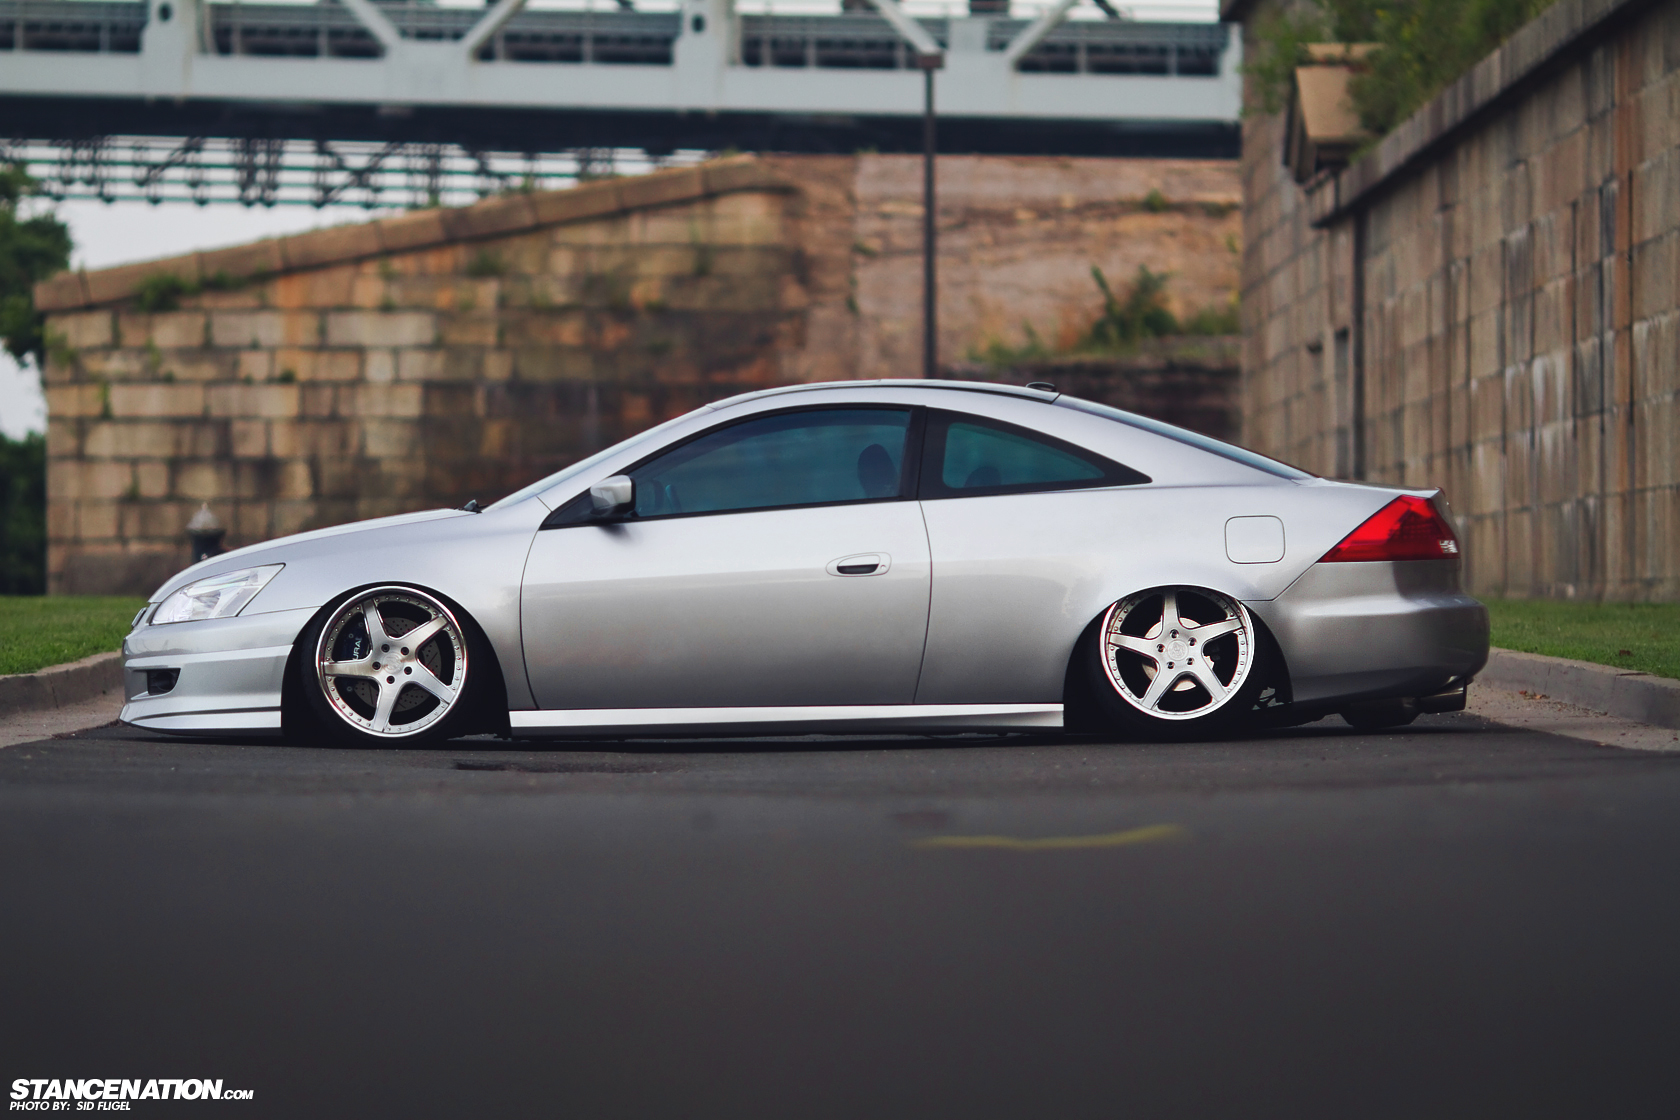 Like no other jamins slammed accord coupe stancenation this sciox Choice Image